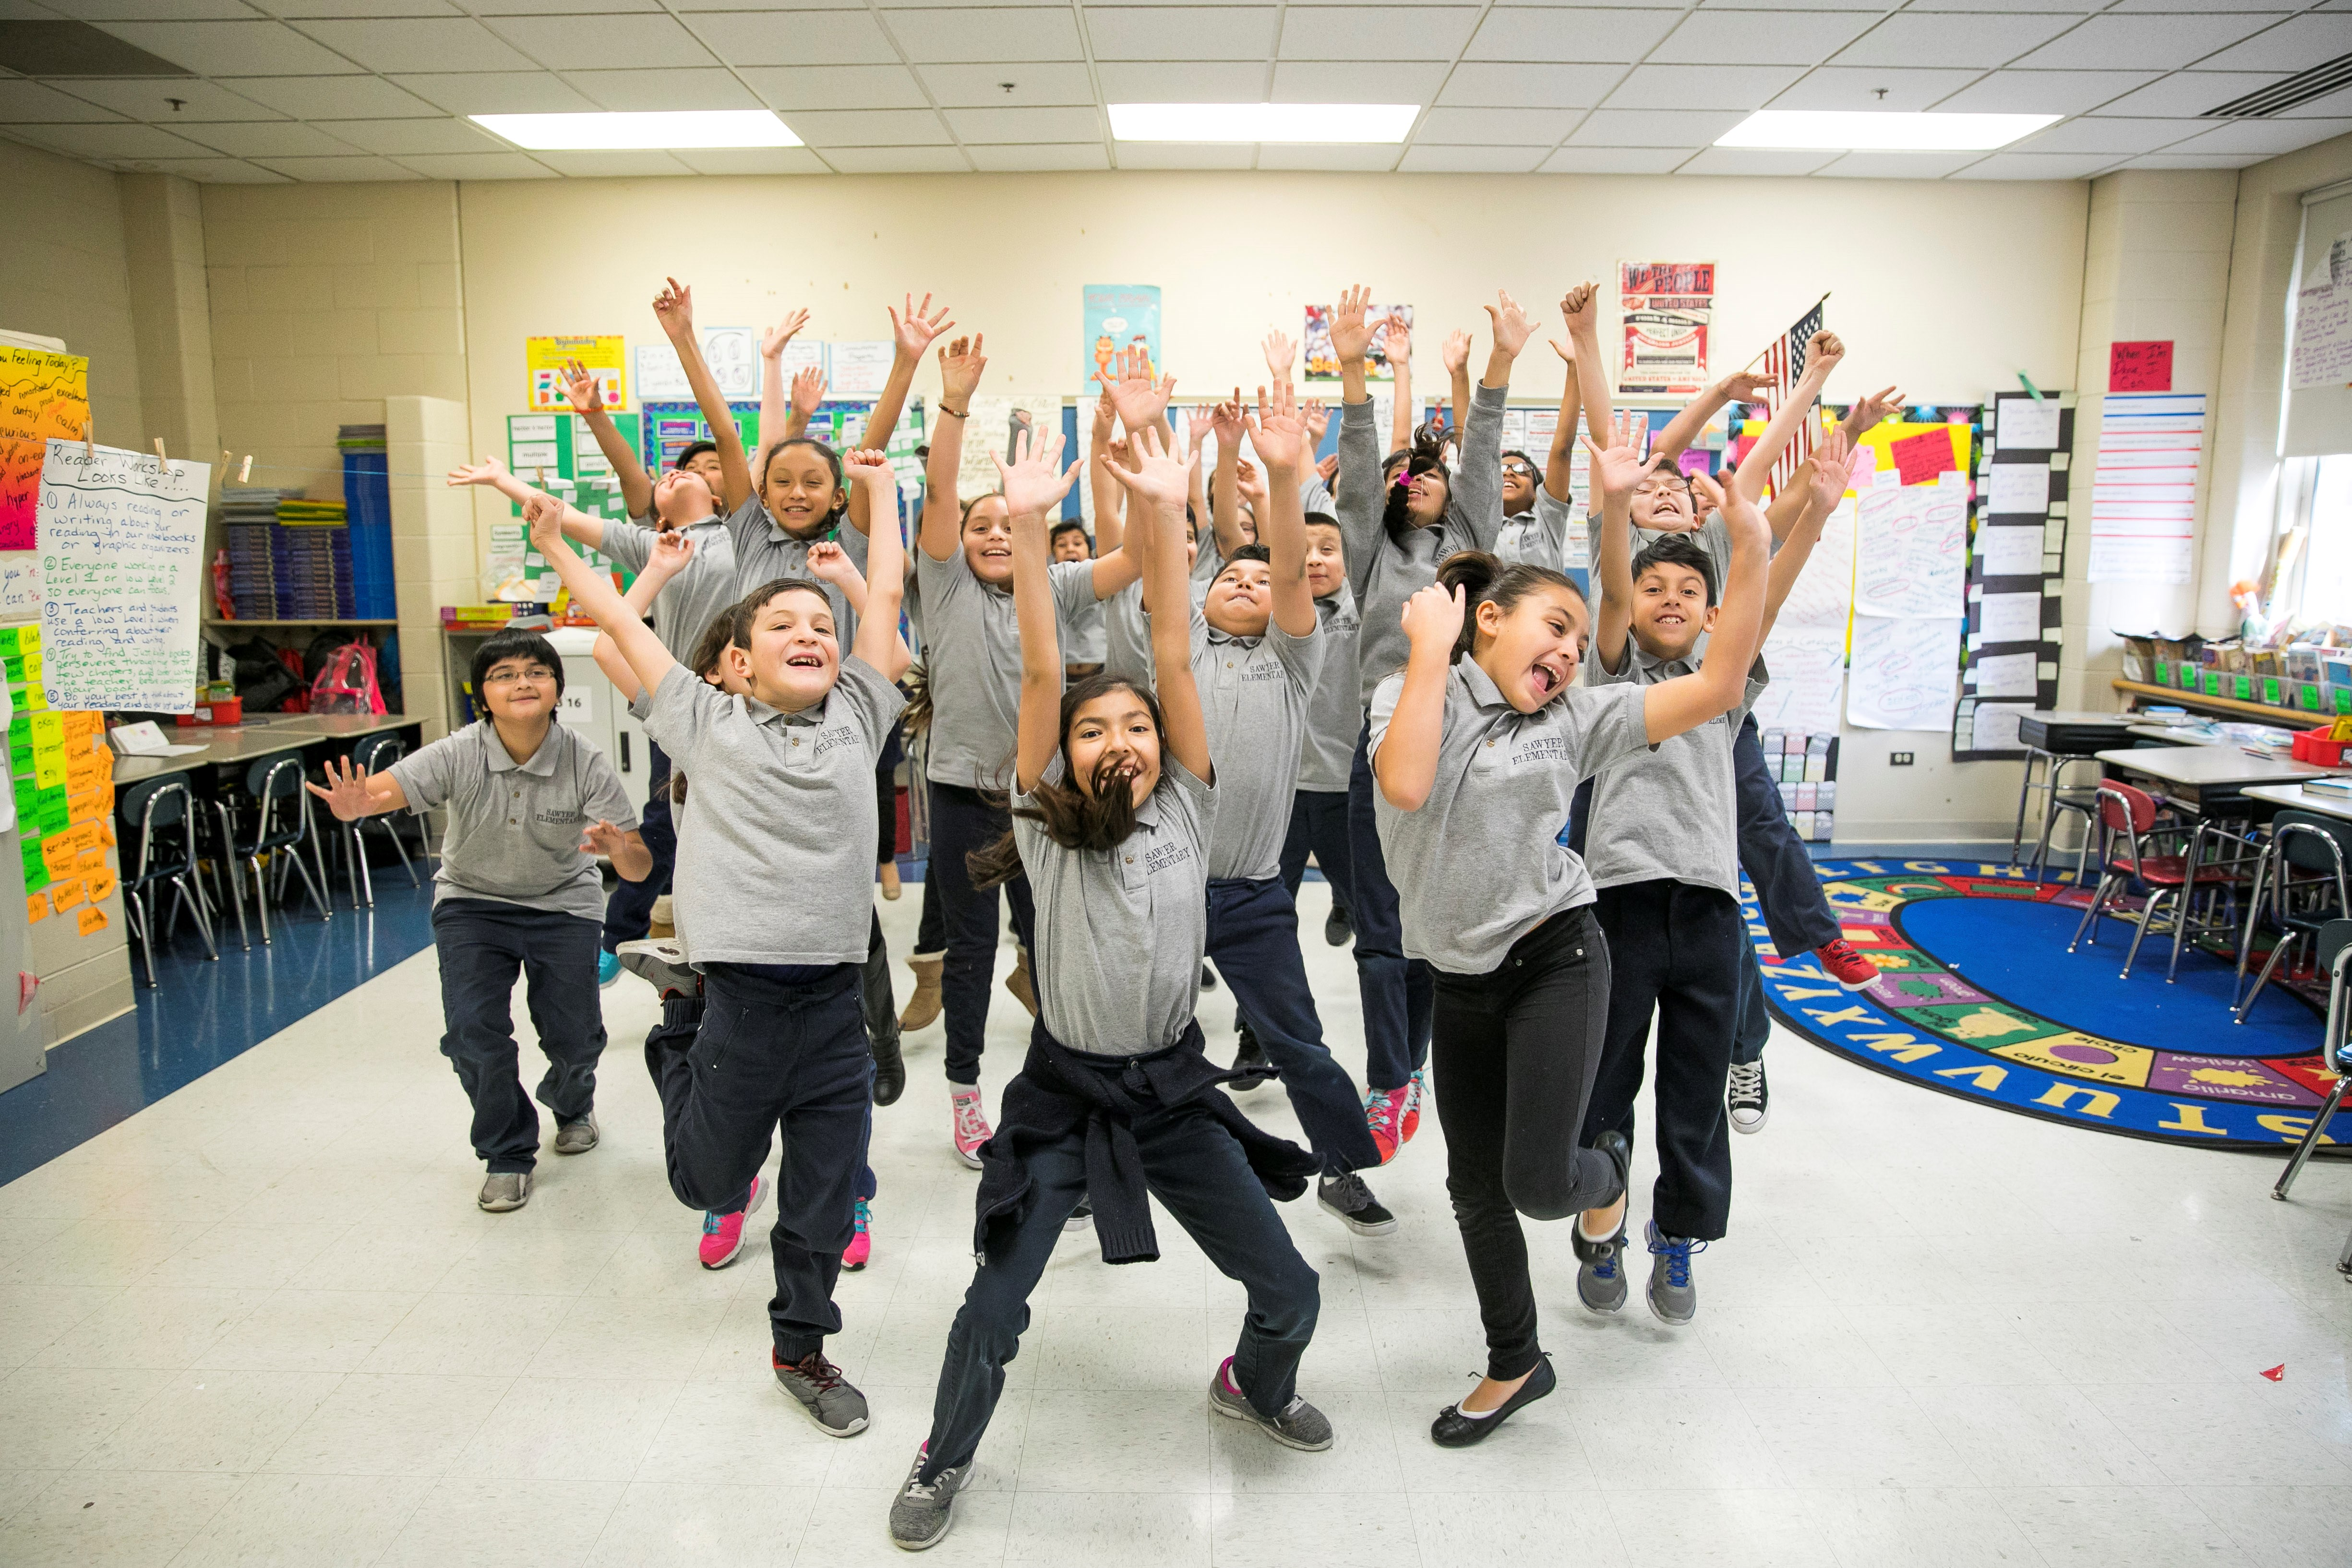 Students jump with their hands above their heads during an in-school dance residency